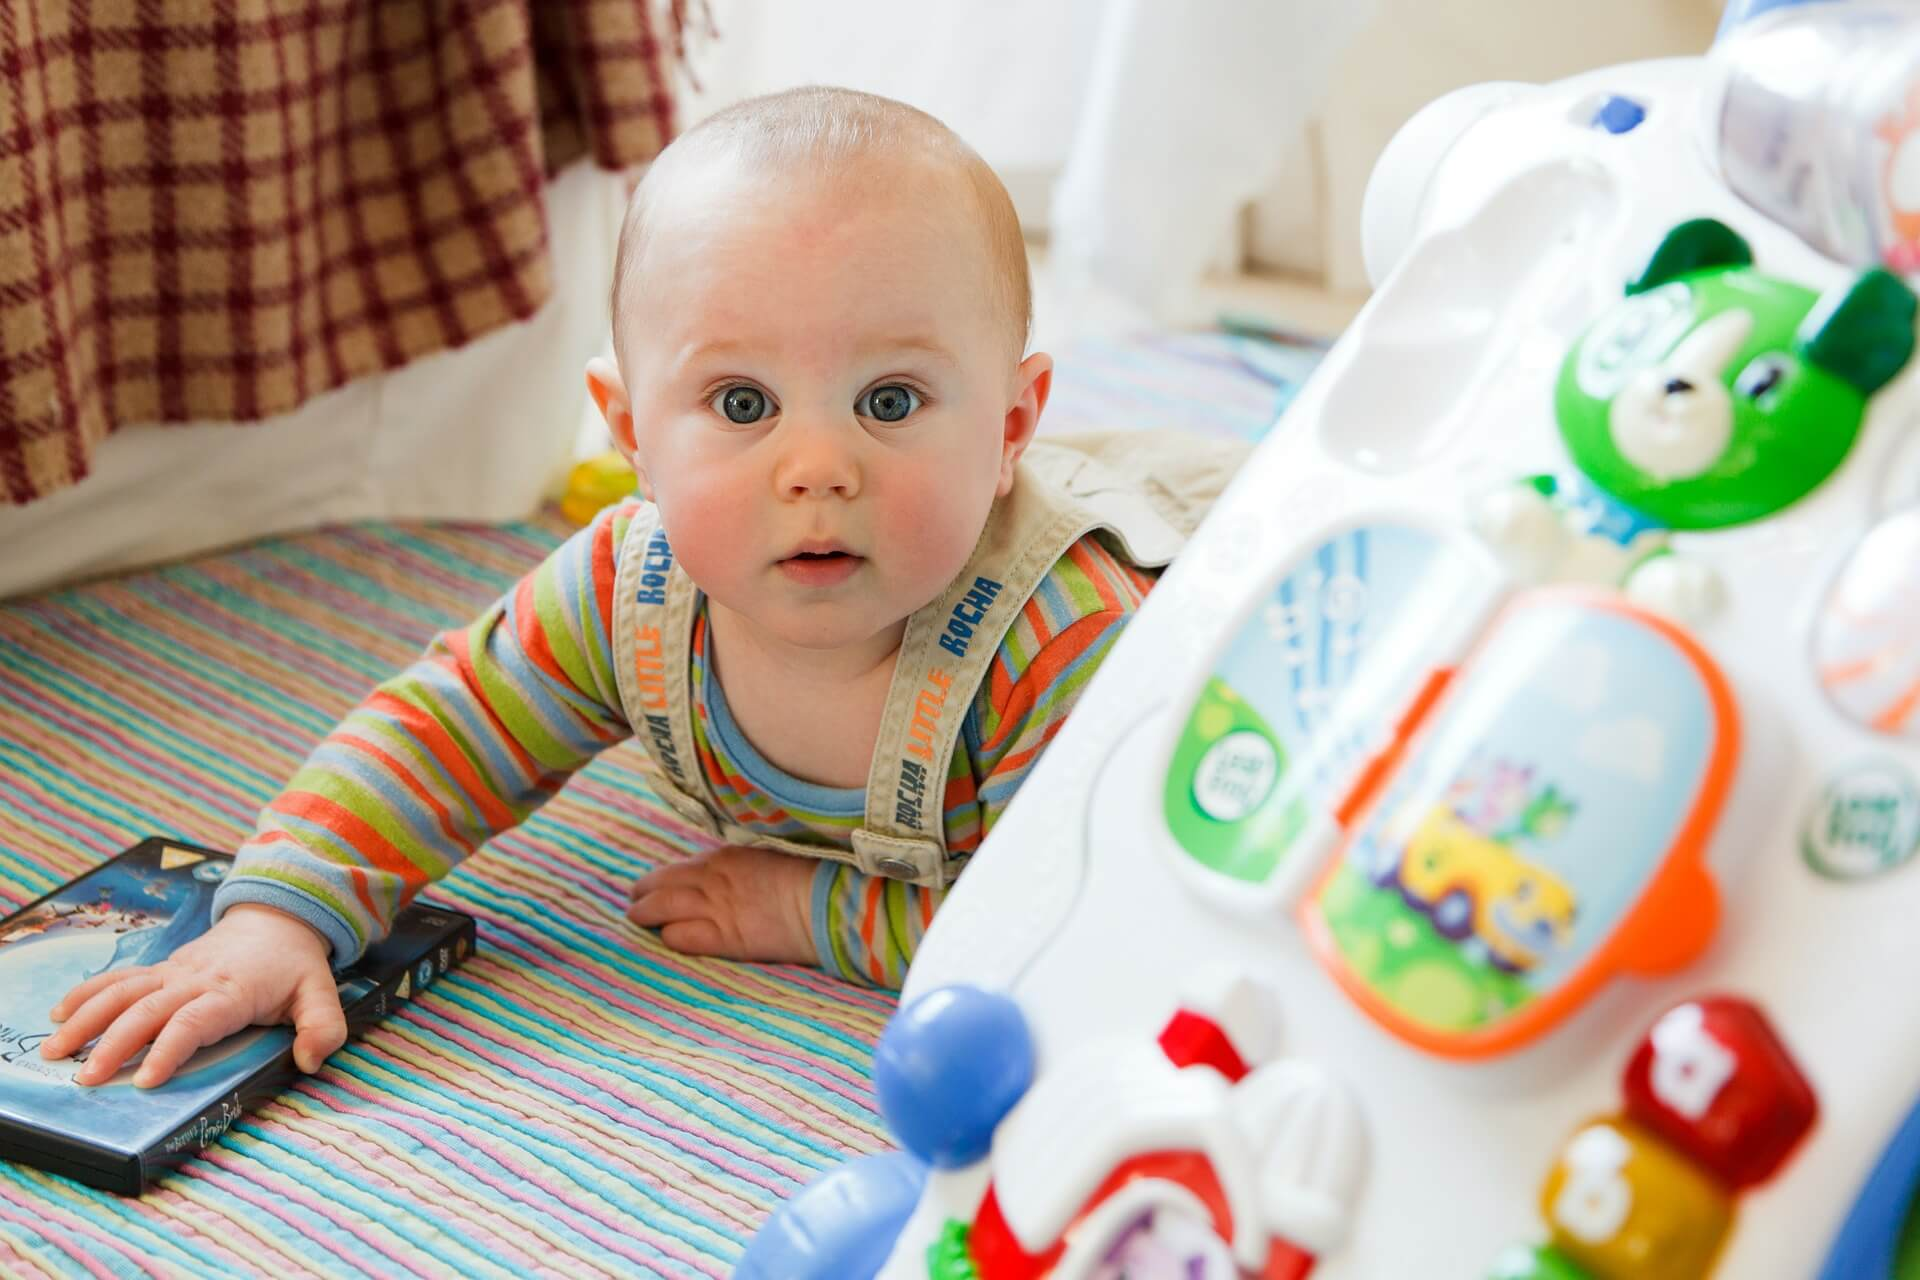 10 Early Stimulation Exercises For Your Baby